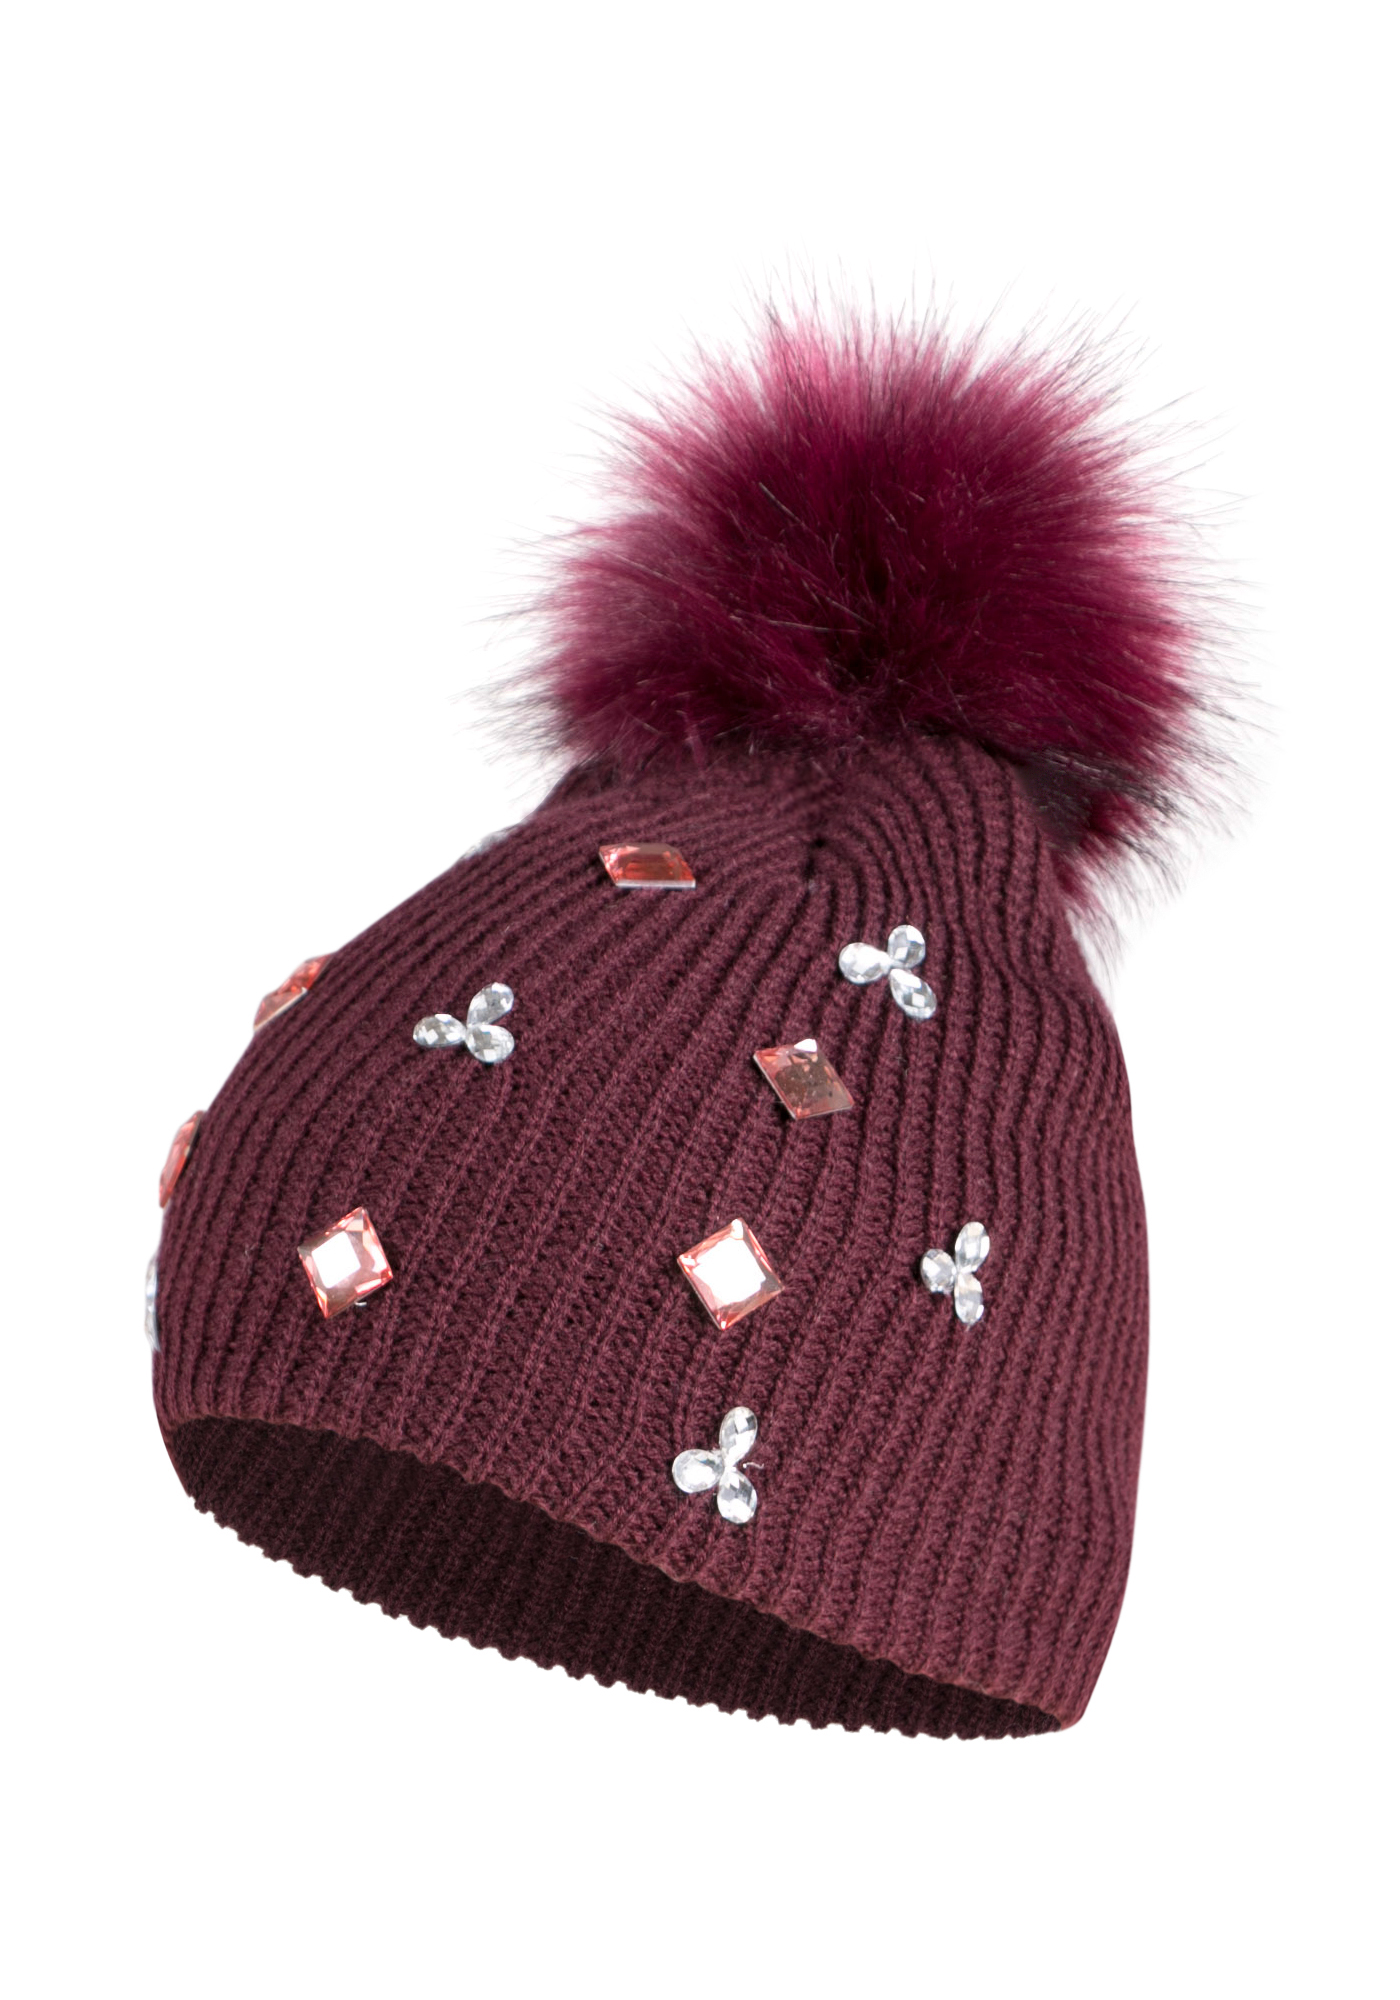 Ladies' Rhinestone Pom Pom Hat, BURGUNDY, hi-res